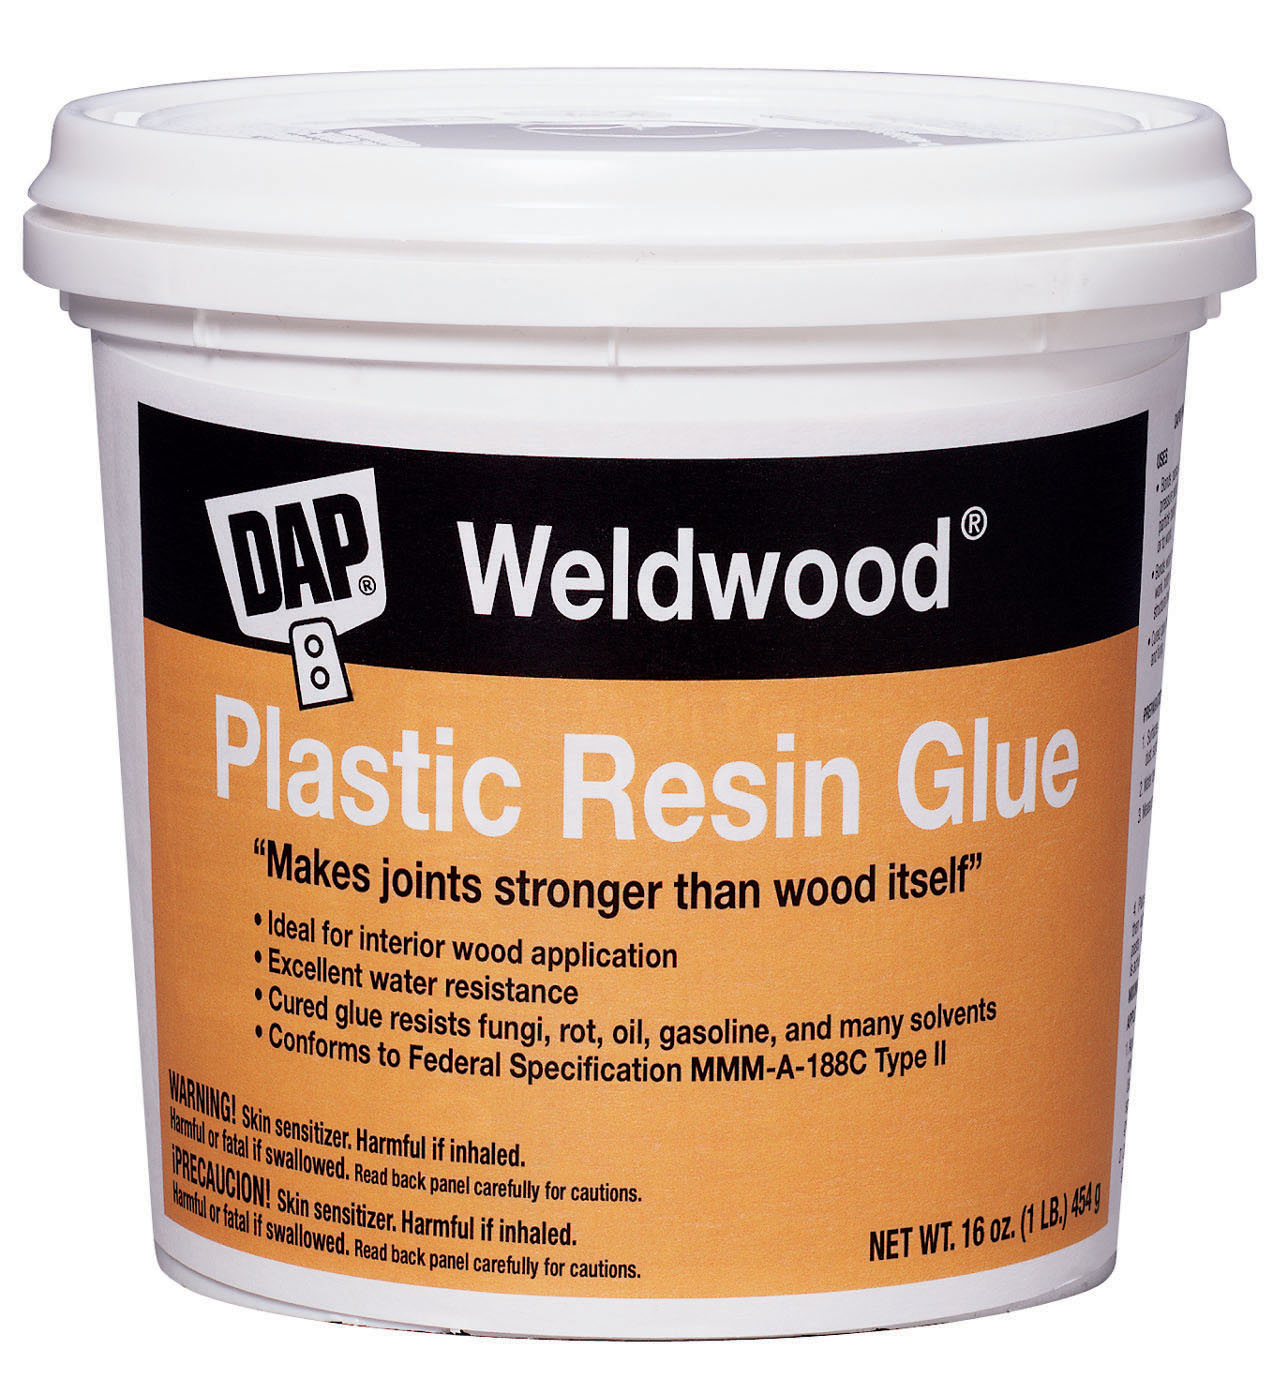 Dap Weldwood 203 1 lb. Plastic Resin Wood Glue